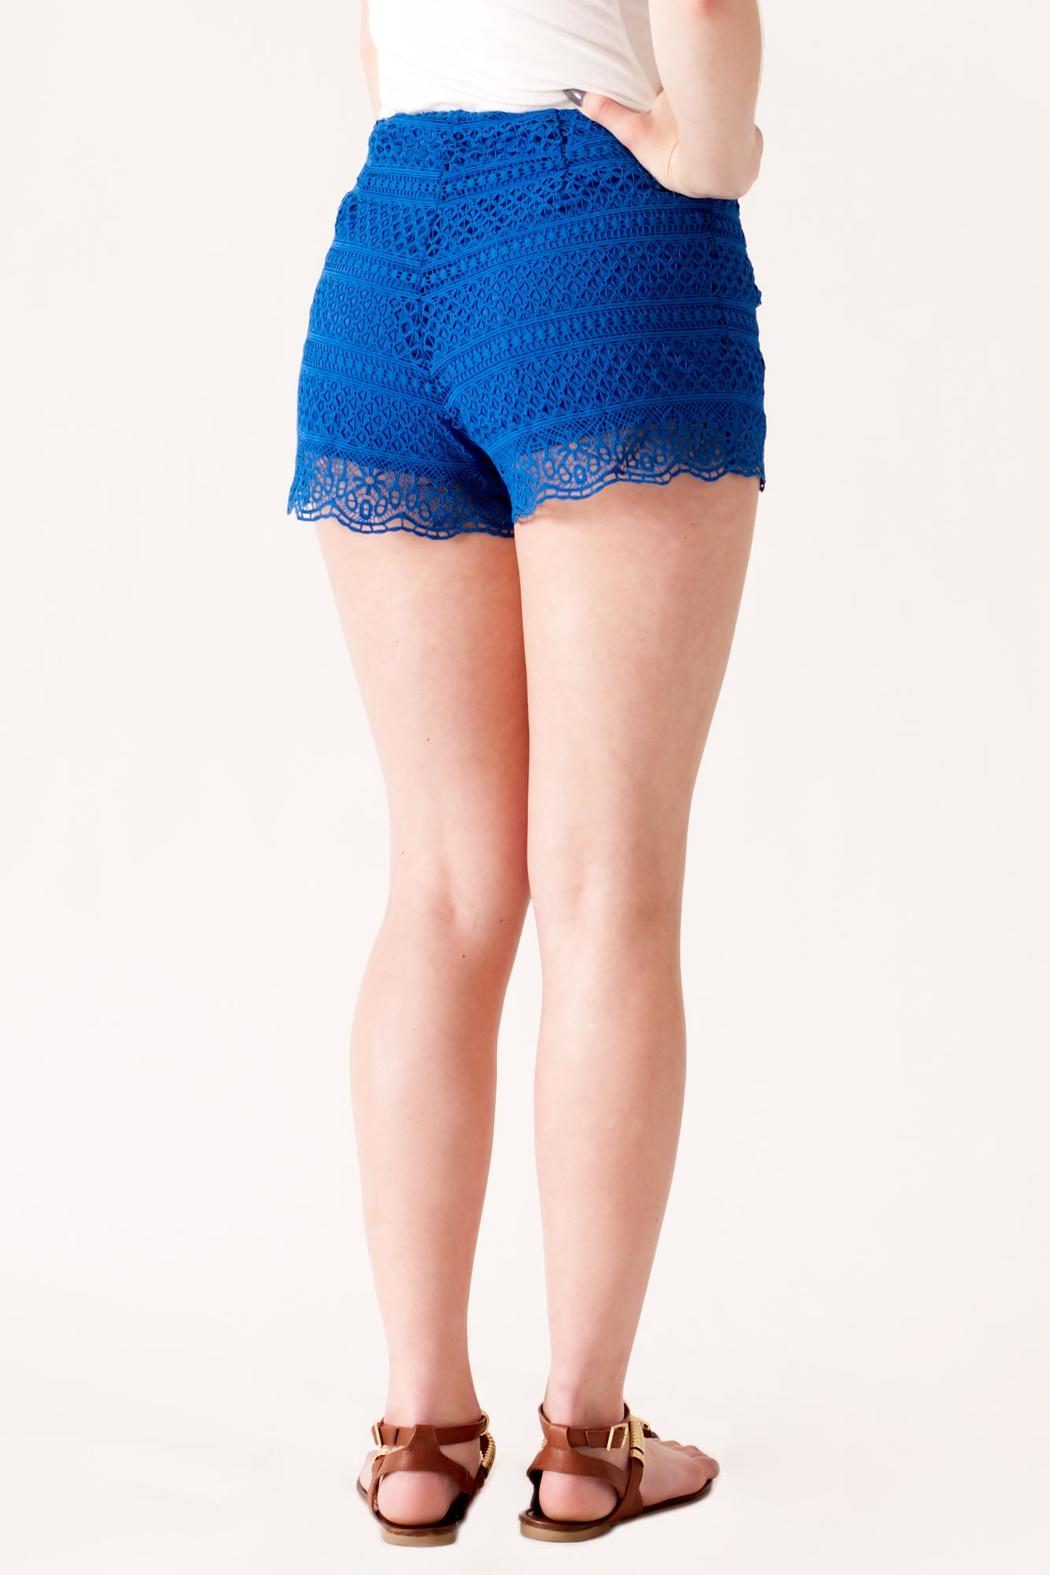 HYFVE High Waisted Crochet Shorts - Back Cropped Image